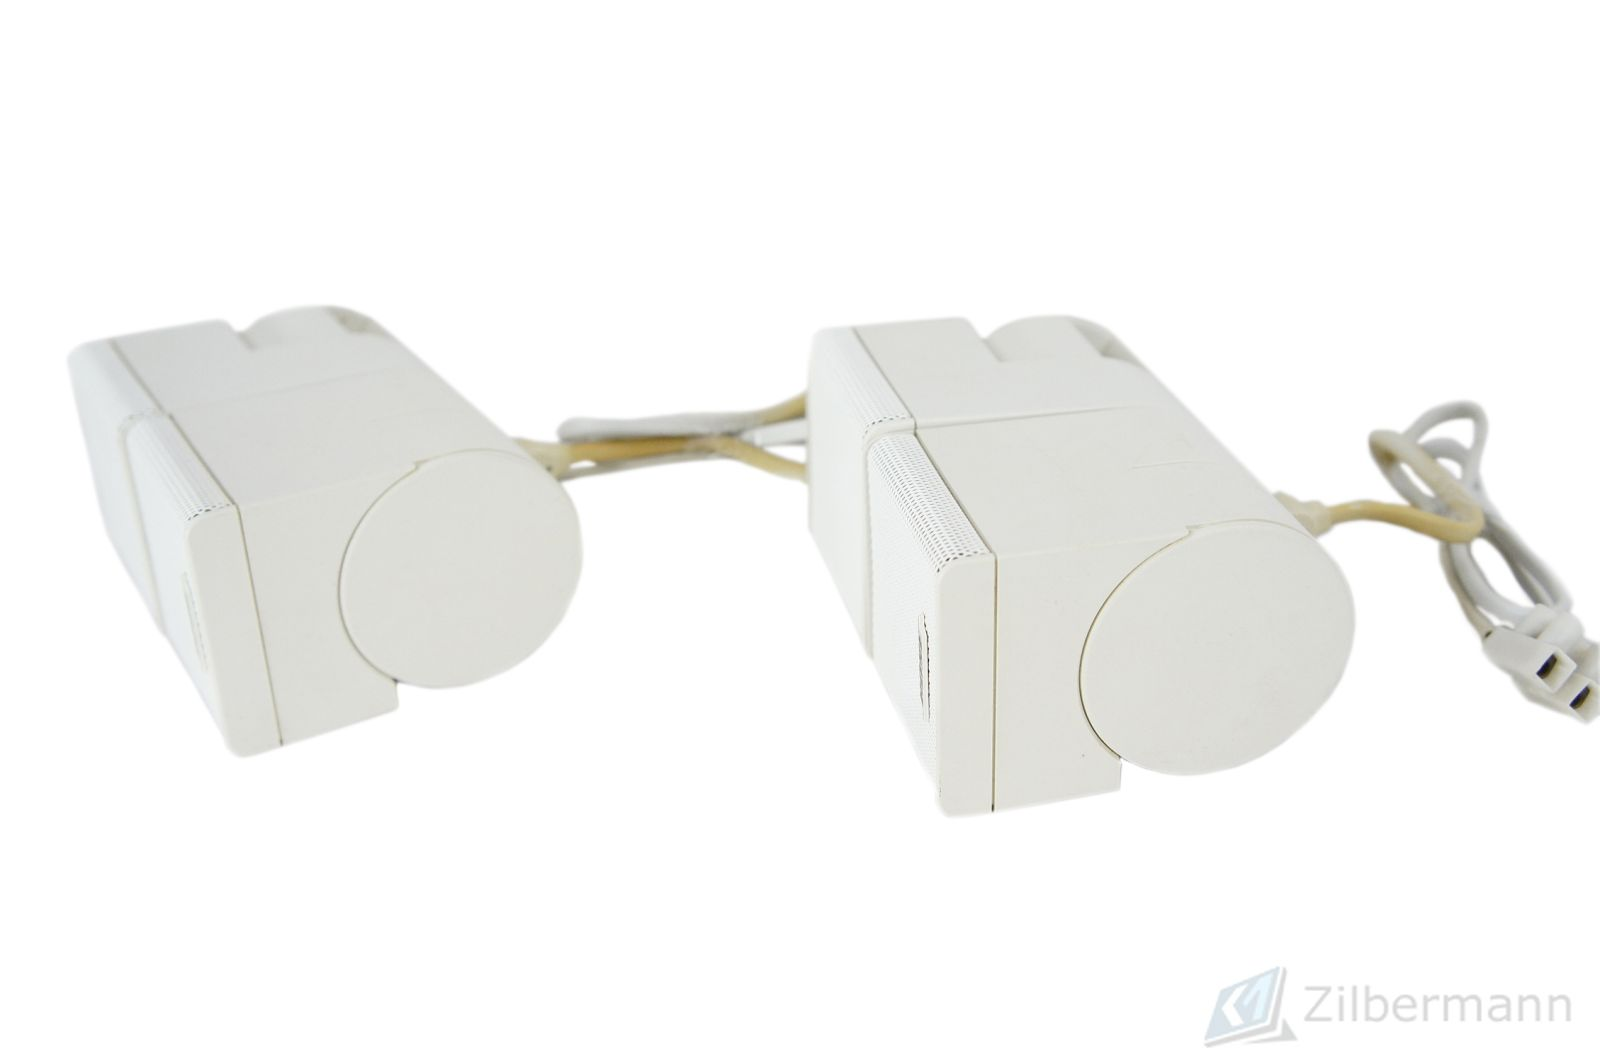 2x_Bose_Jewel_Cubes_Boxen_Satelliten_mit_Adapter_Weiss_06